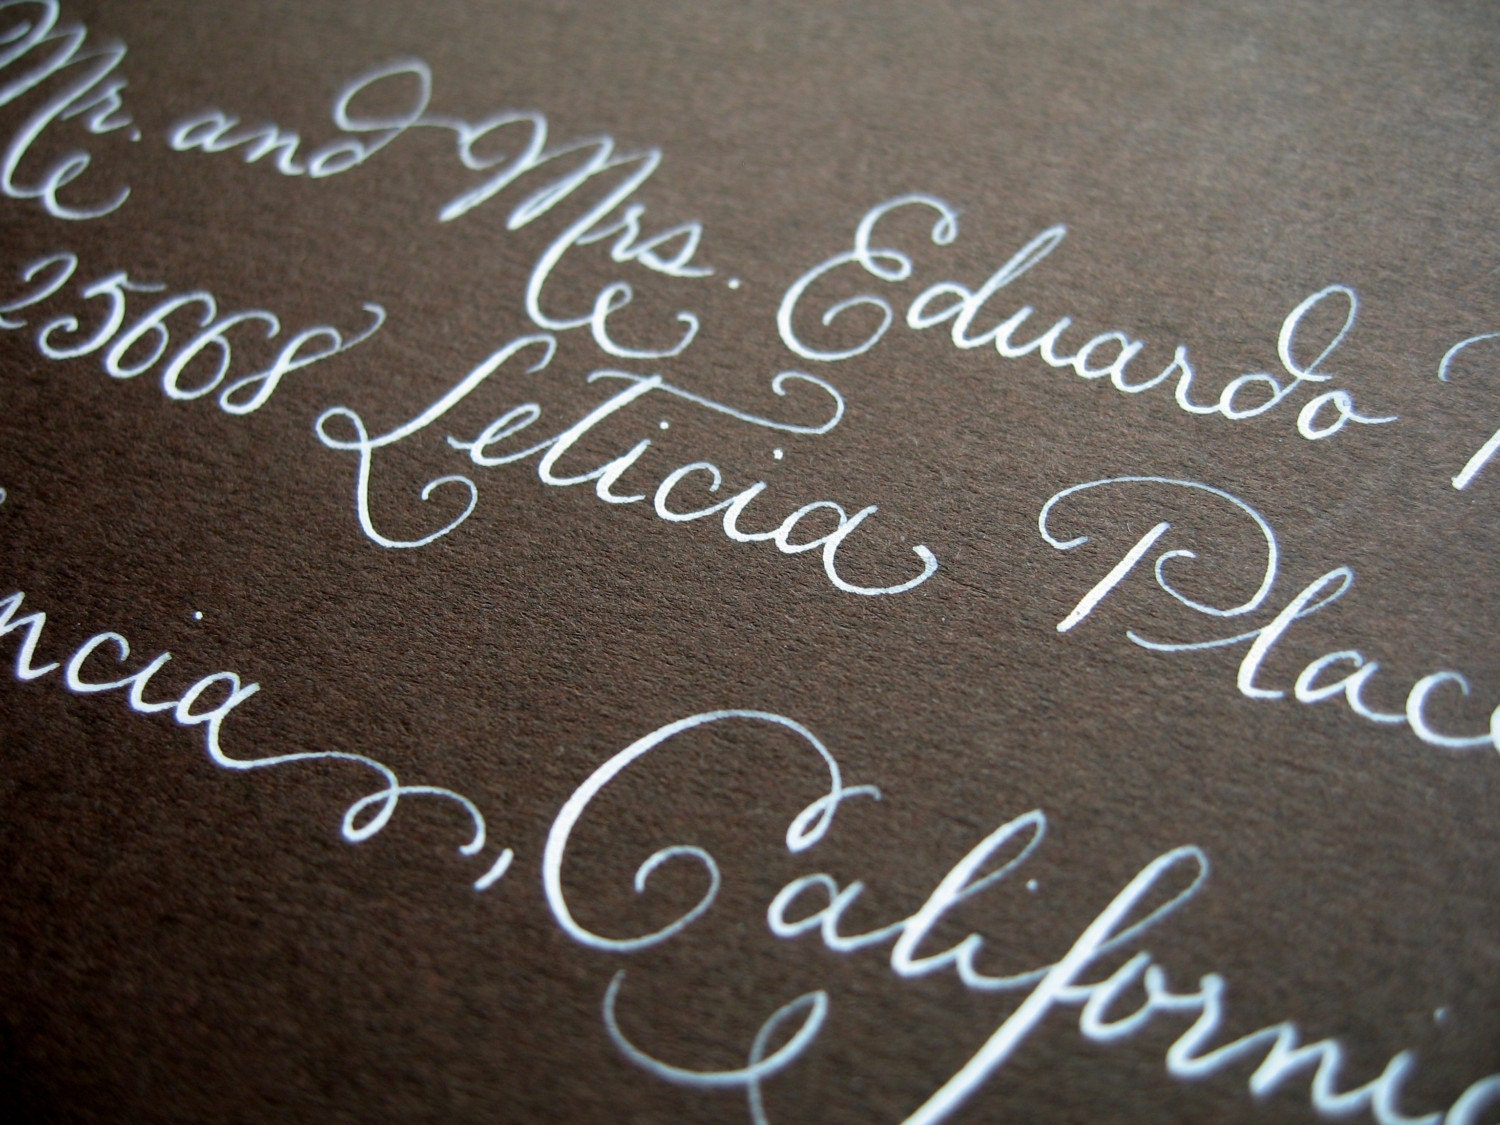 Calligraphy Samples By Lhcalligraphy On Etsy